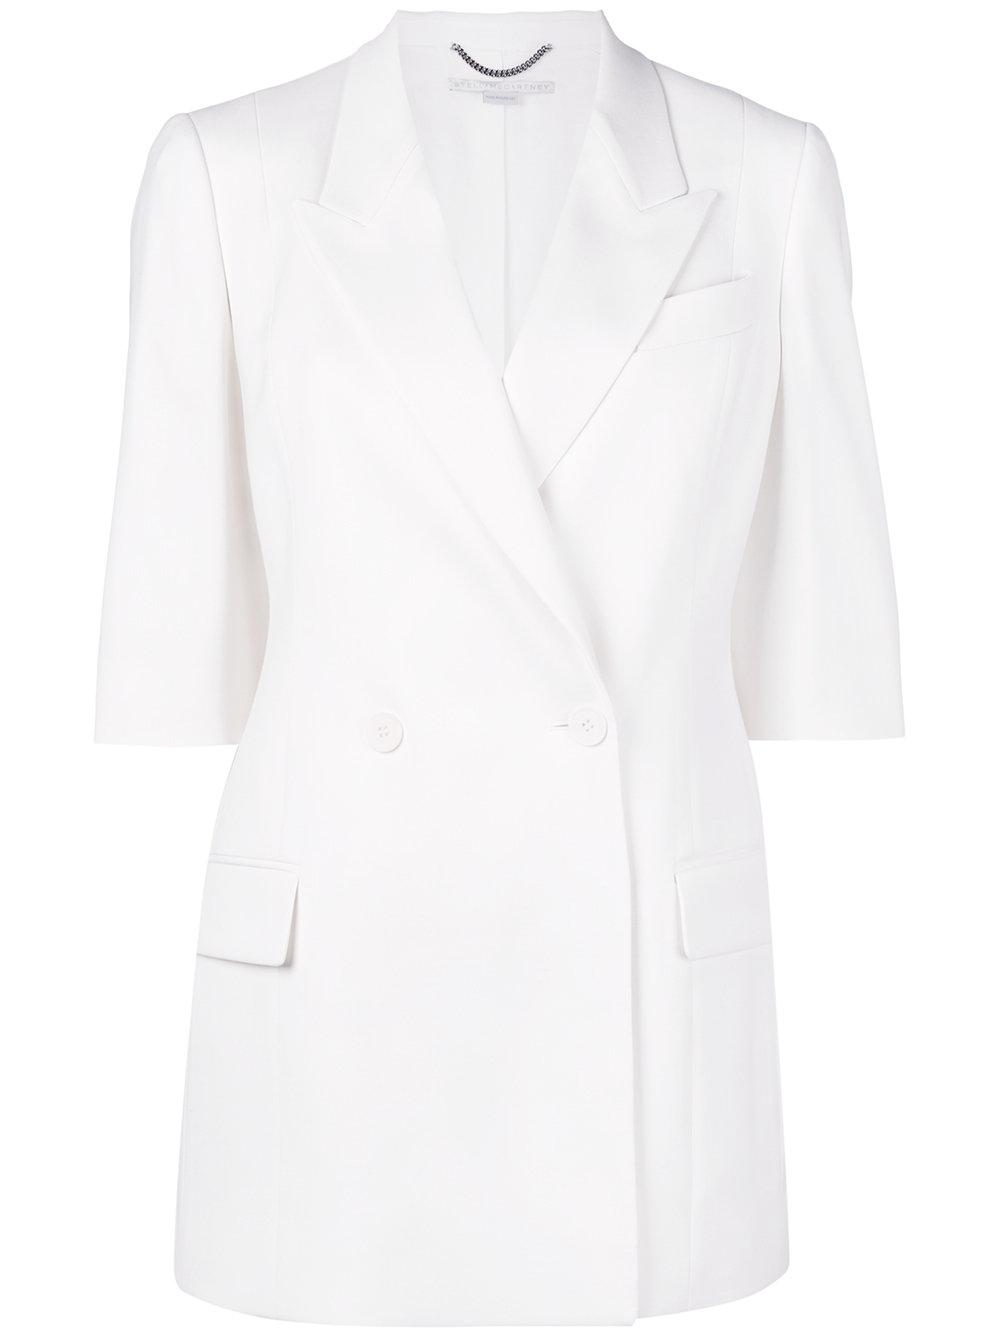 stella mccartney double breasted blazer in white lyst. Black Bedroom Furniture Sets. Home Design Ideas